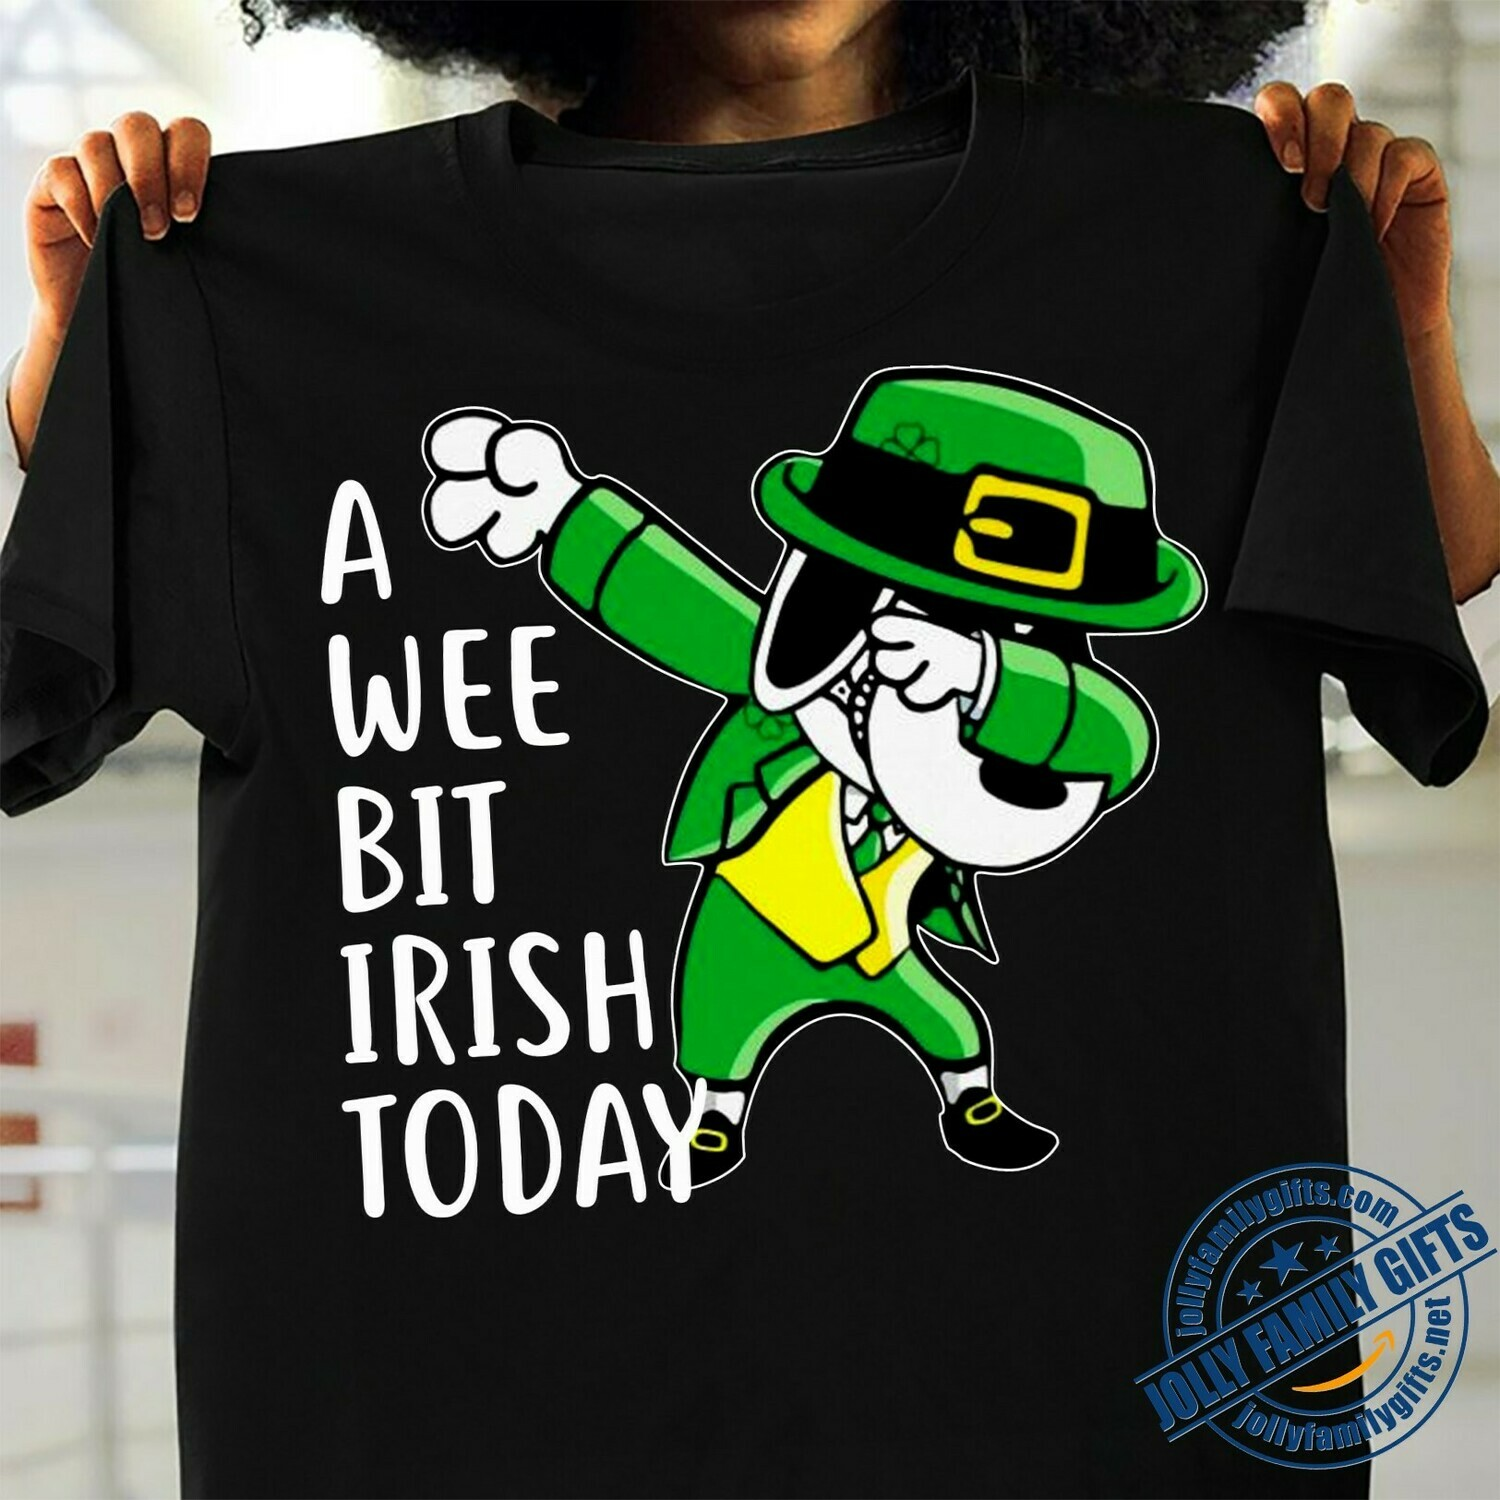 A wee bit Irish Today Green Leprechauns Snoopy Peanuts dabbing St. Patrick's Day  Unisex T-Shirt Hoodie Sweatshirt Sweater Plus Size for Ladies Women Men Kids Youth Gifts Tee Jolly Family Gifts